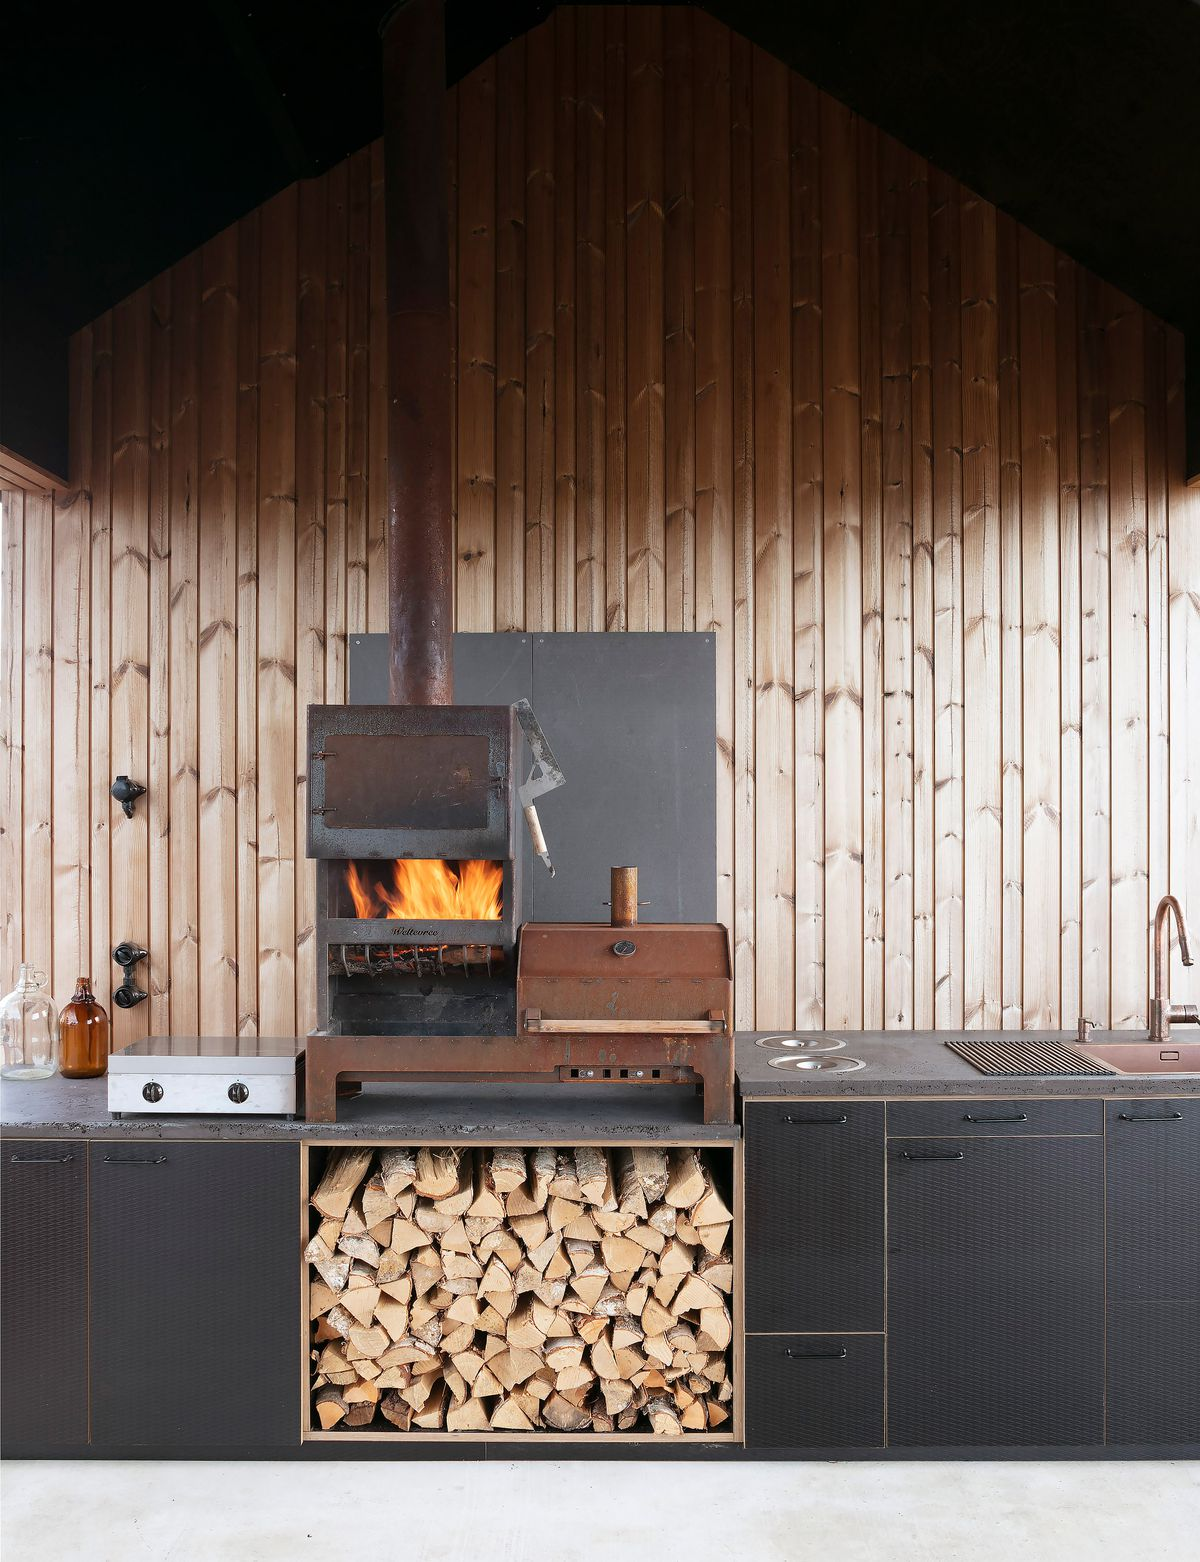 Pile of wood in modern kitchen.